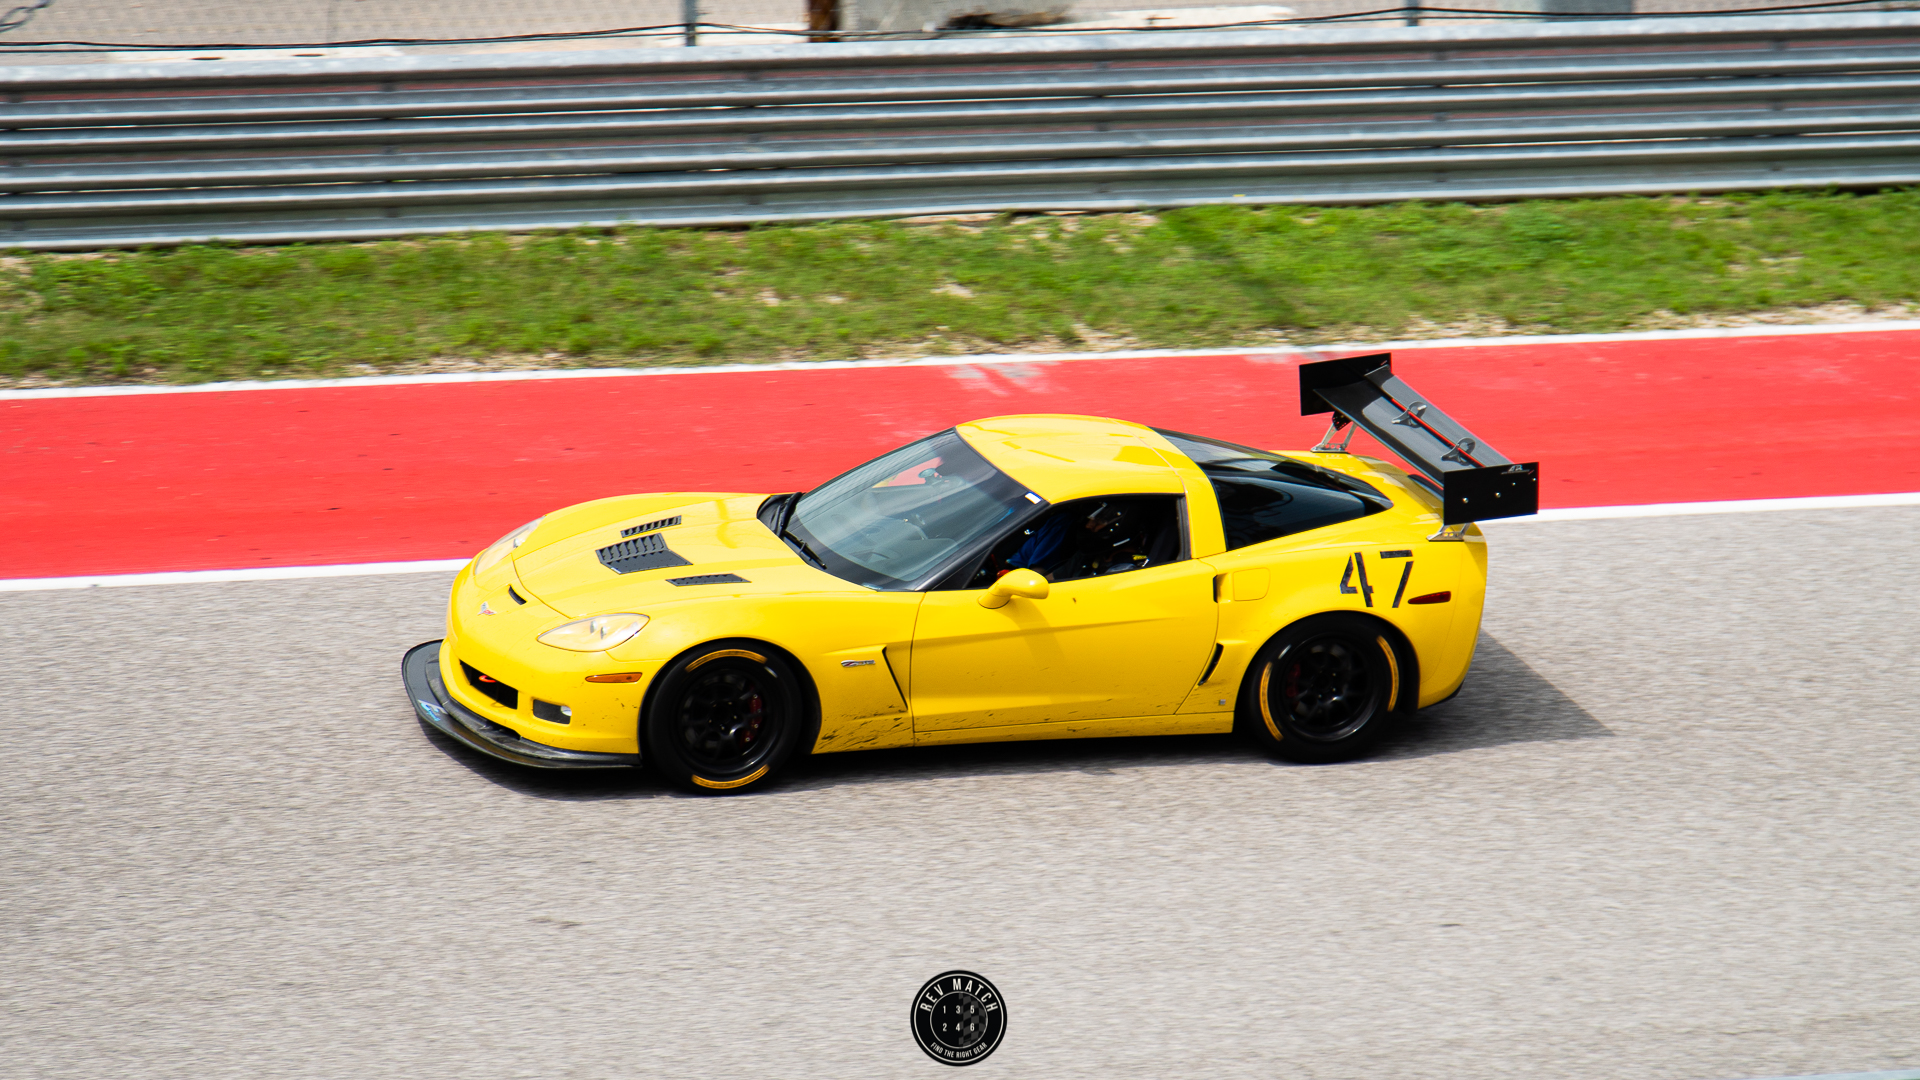 Edge Addict COTA May 2019 Rev Match Media-109.jpg